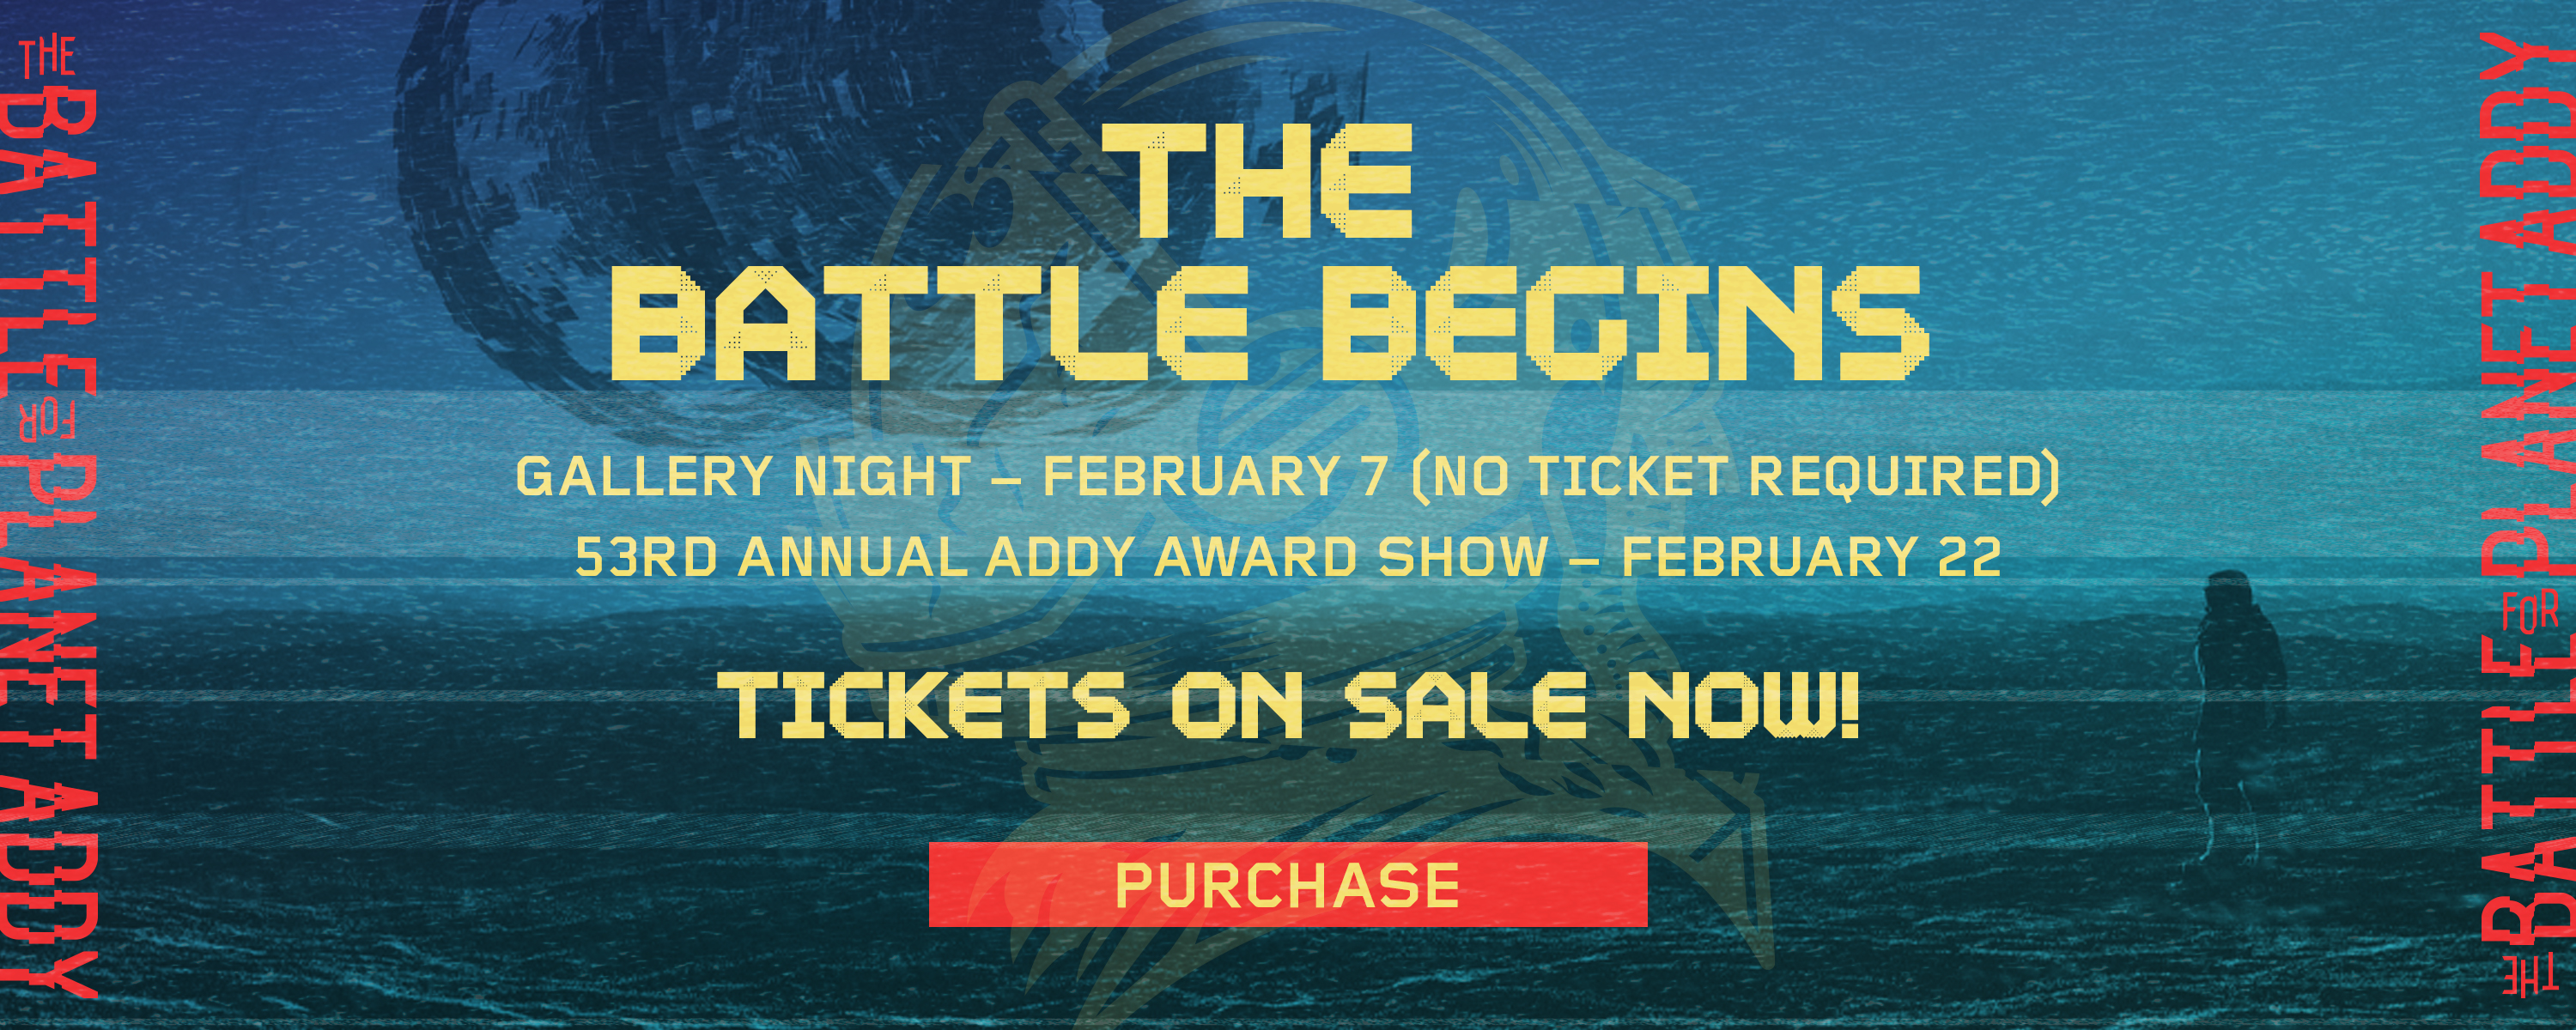 ADDY_websitebanner_3000x1200_battlebegins